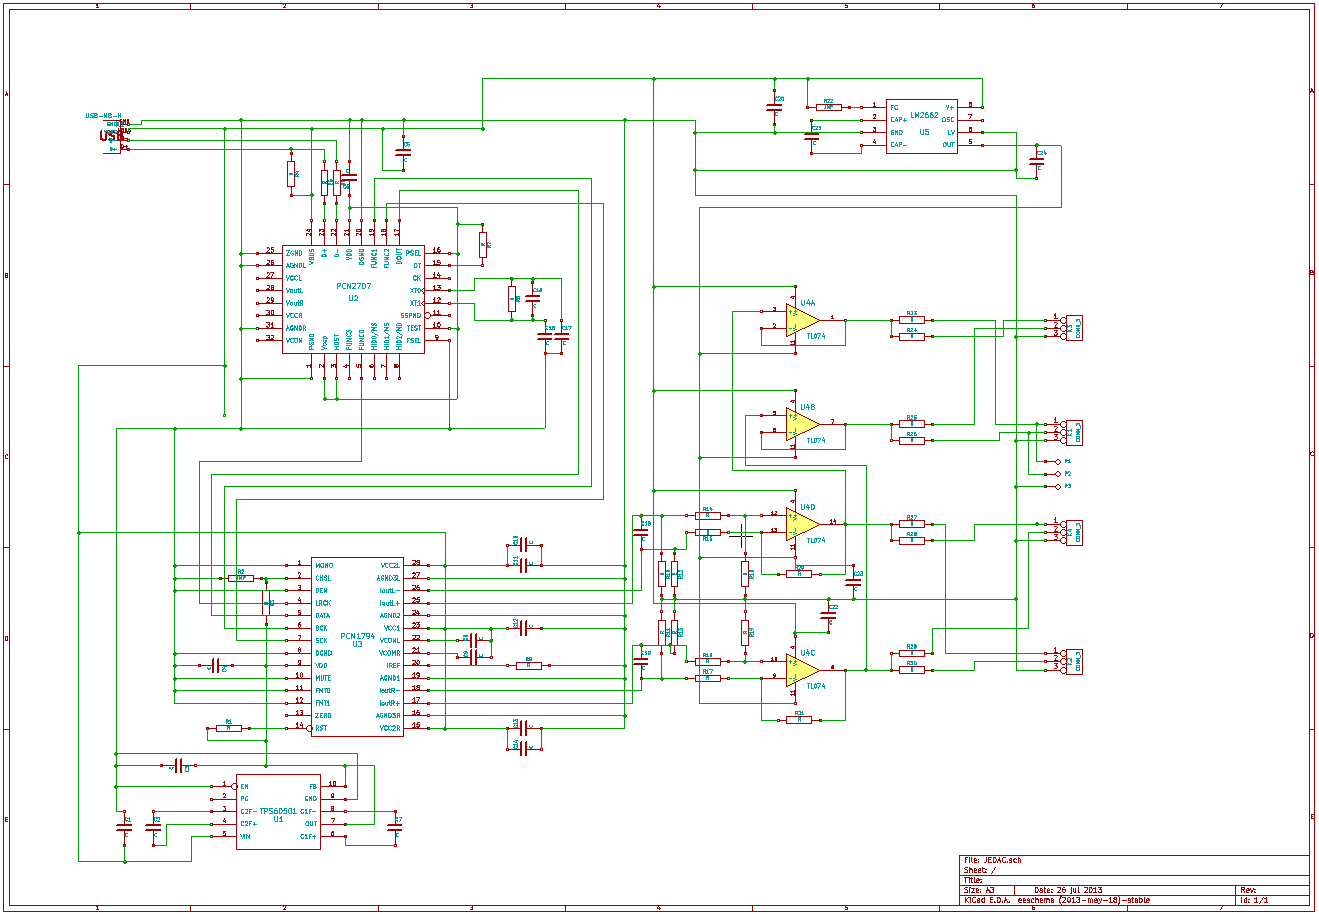 Jedac Yet Another Take On A Diy High End Usb Audio Dac Control Board Wiring Diagram Circuit Description